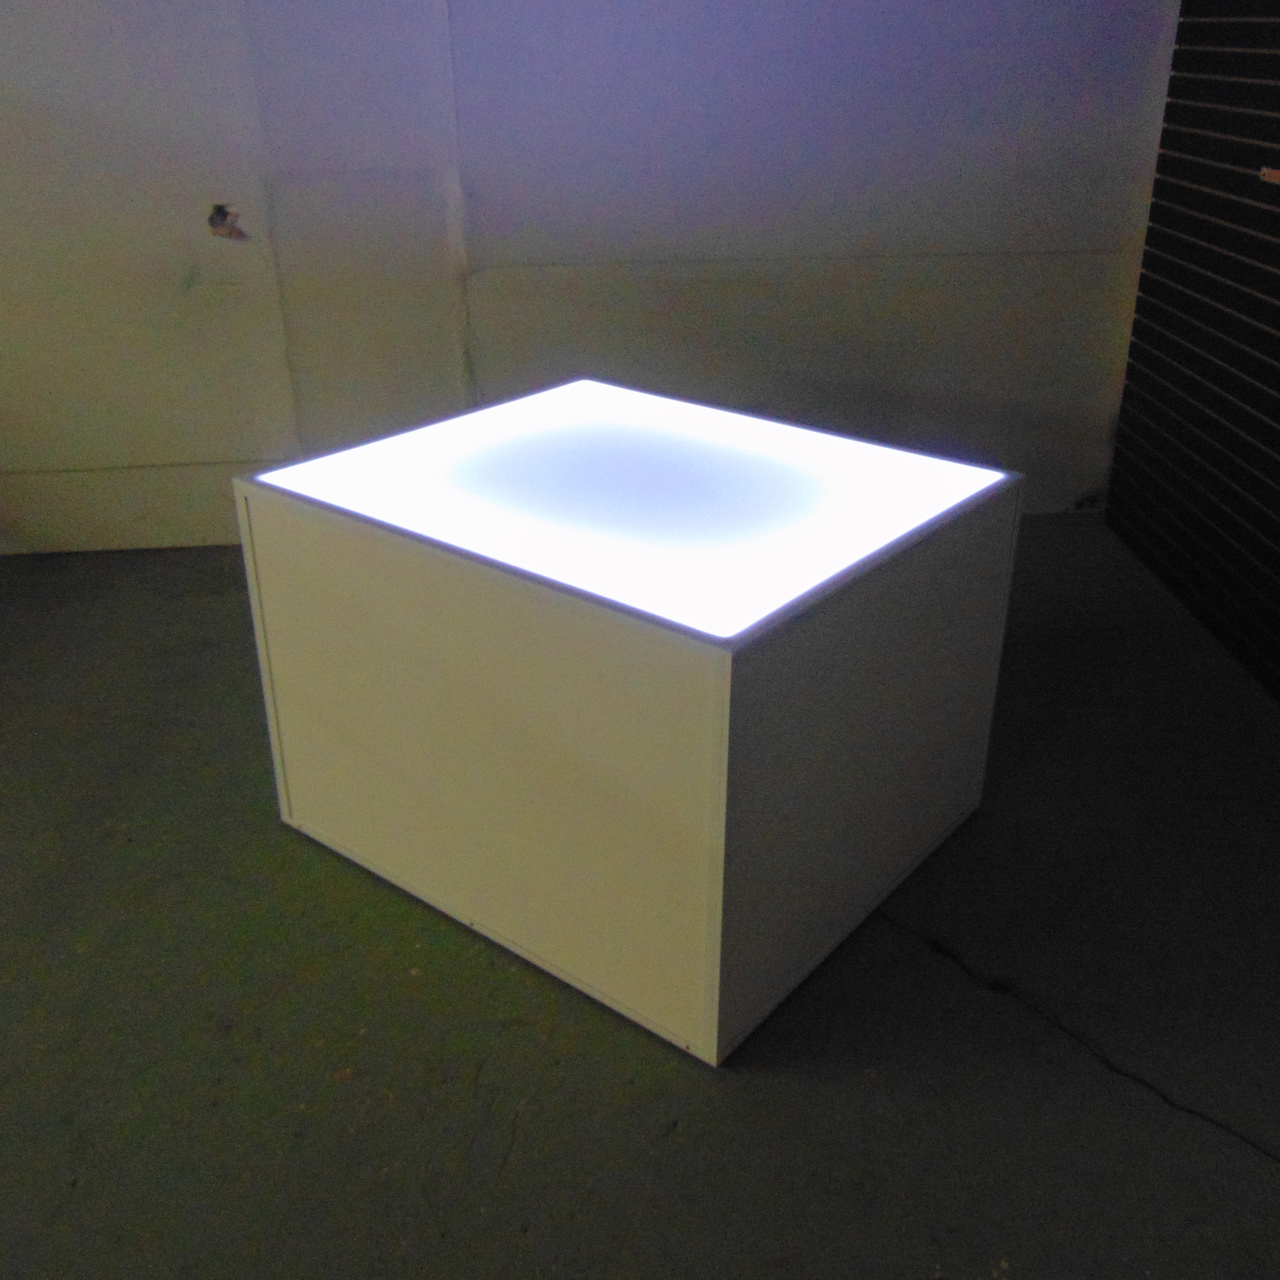 White Retail Box Table | 48x42x32